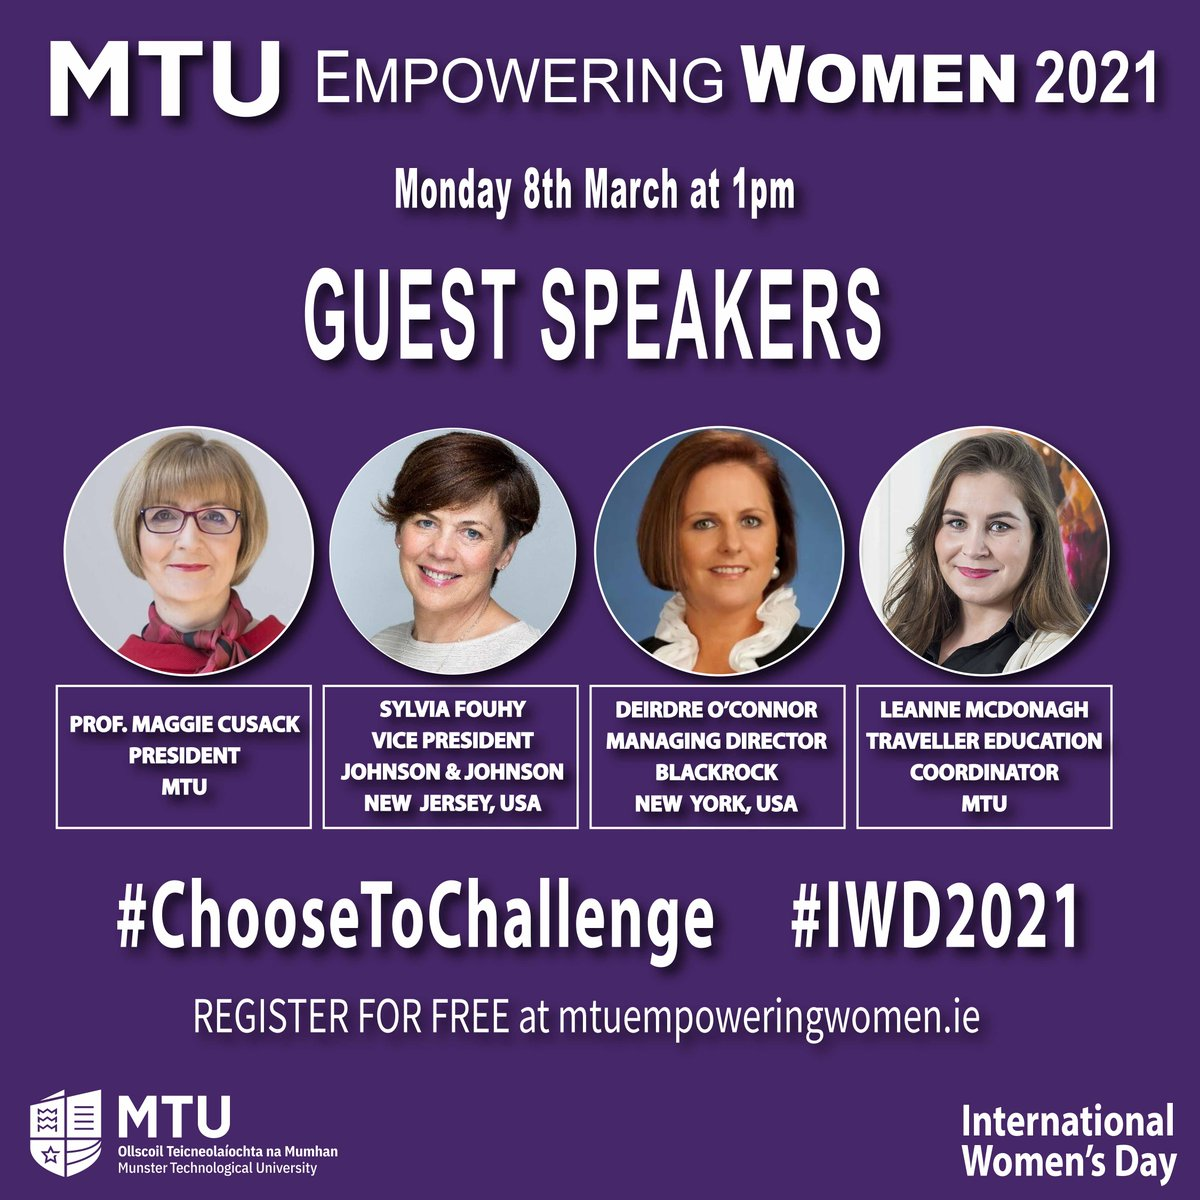 On Monday 8th March at 1pm, MTU are hosting a free virtual event for International Women's Day. MTU EMPOWERING WOMEN 2021 aims to encourage, inspire and support our female students, staff, alumni and wider community. Full details and to register visit https://t.co/qwbgTVl9Qx https://t.co/x3cj1wovAI